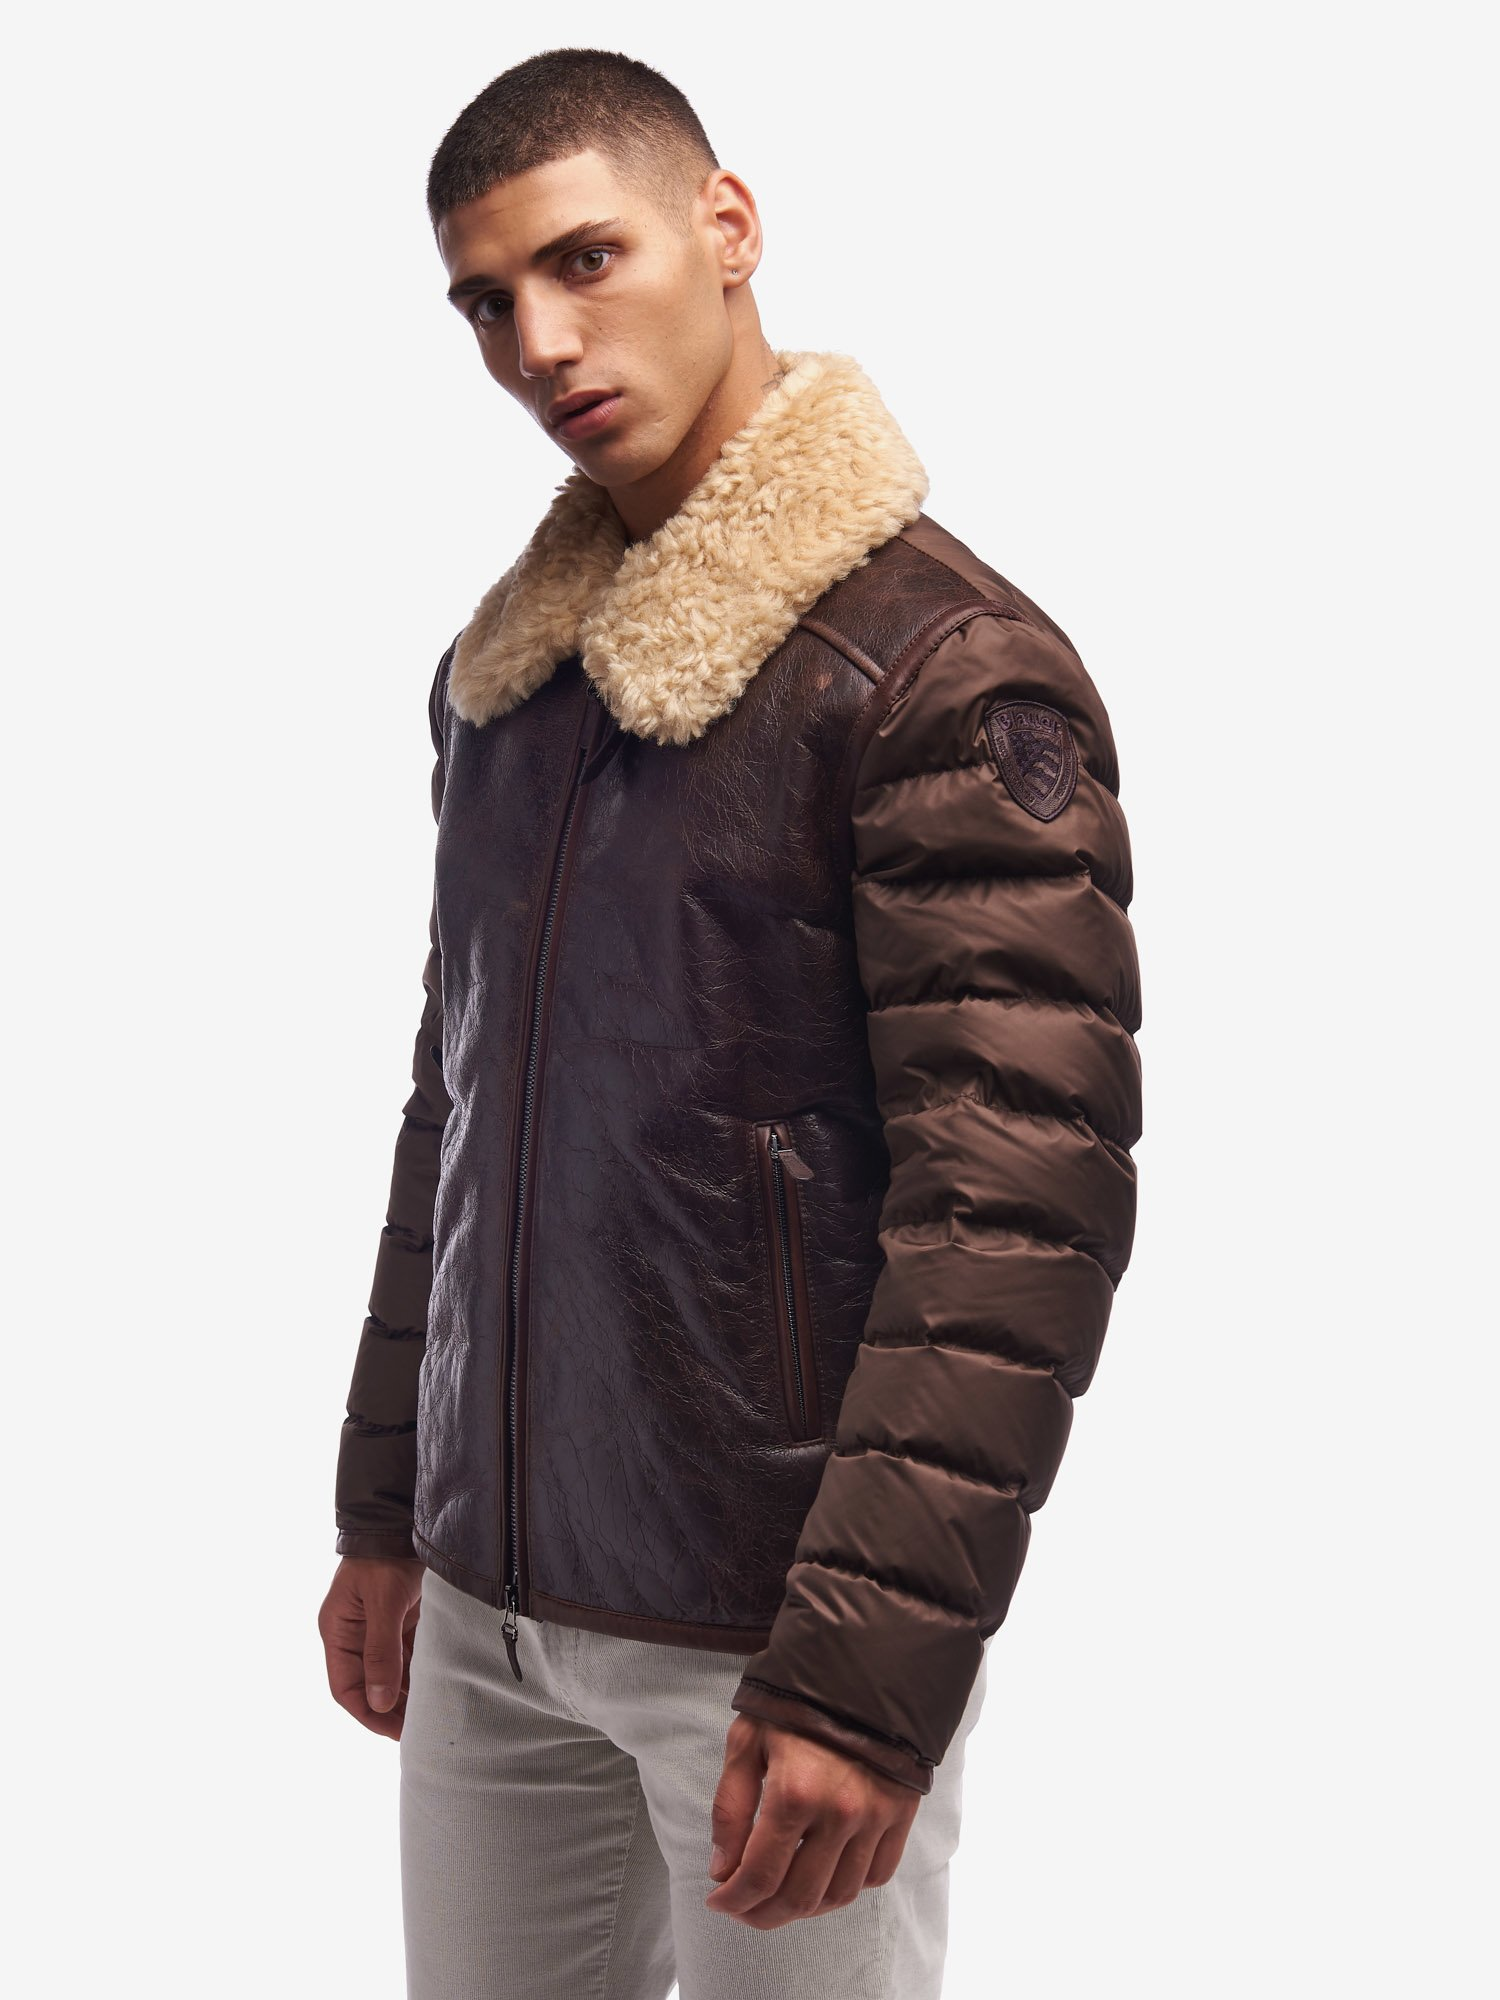 Blauer - CLARKE VINTAGE SHEARLING LEATHER AND NYLON JACKET - Coconut - Blauer